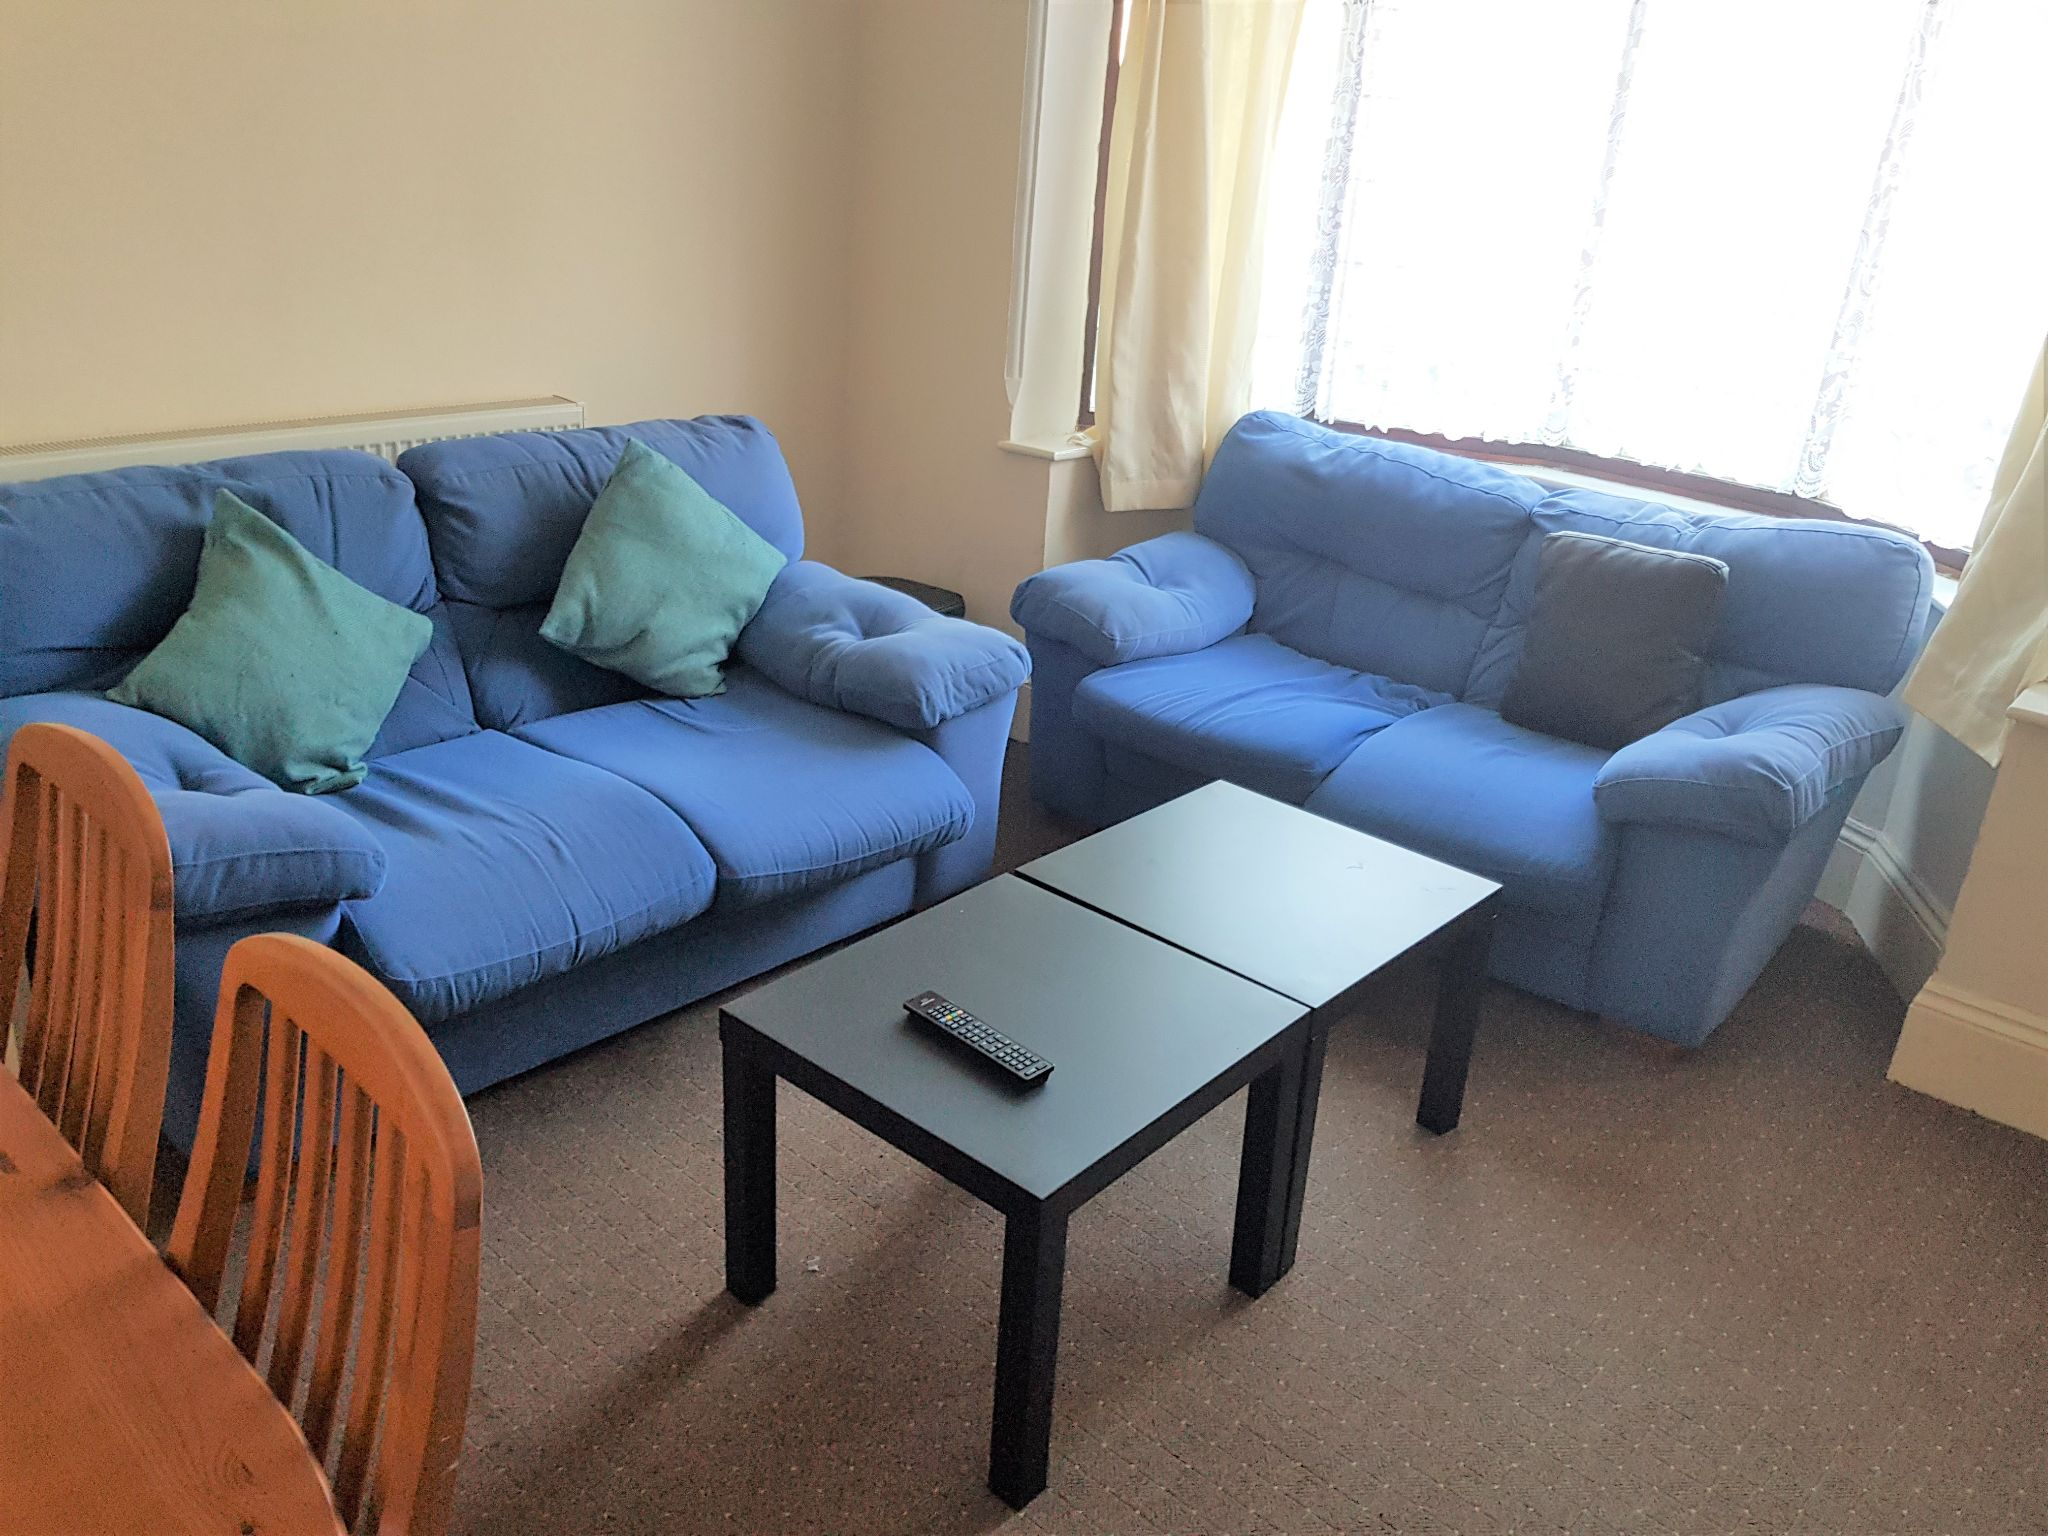 1 Bed Shared House To Rent - Communal Lounge / Dining Room